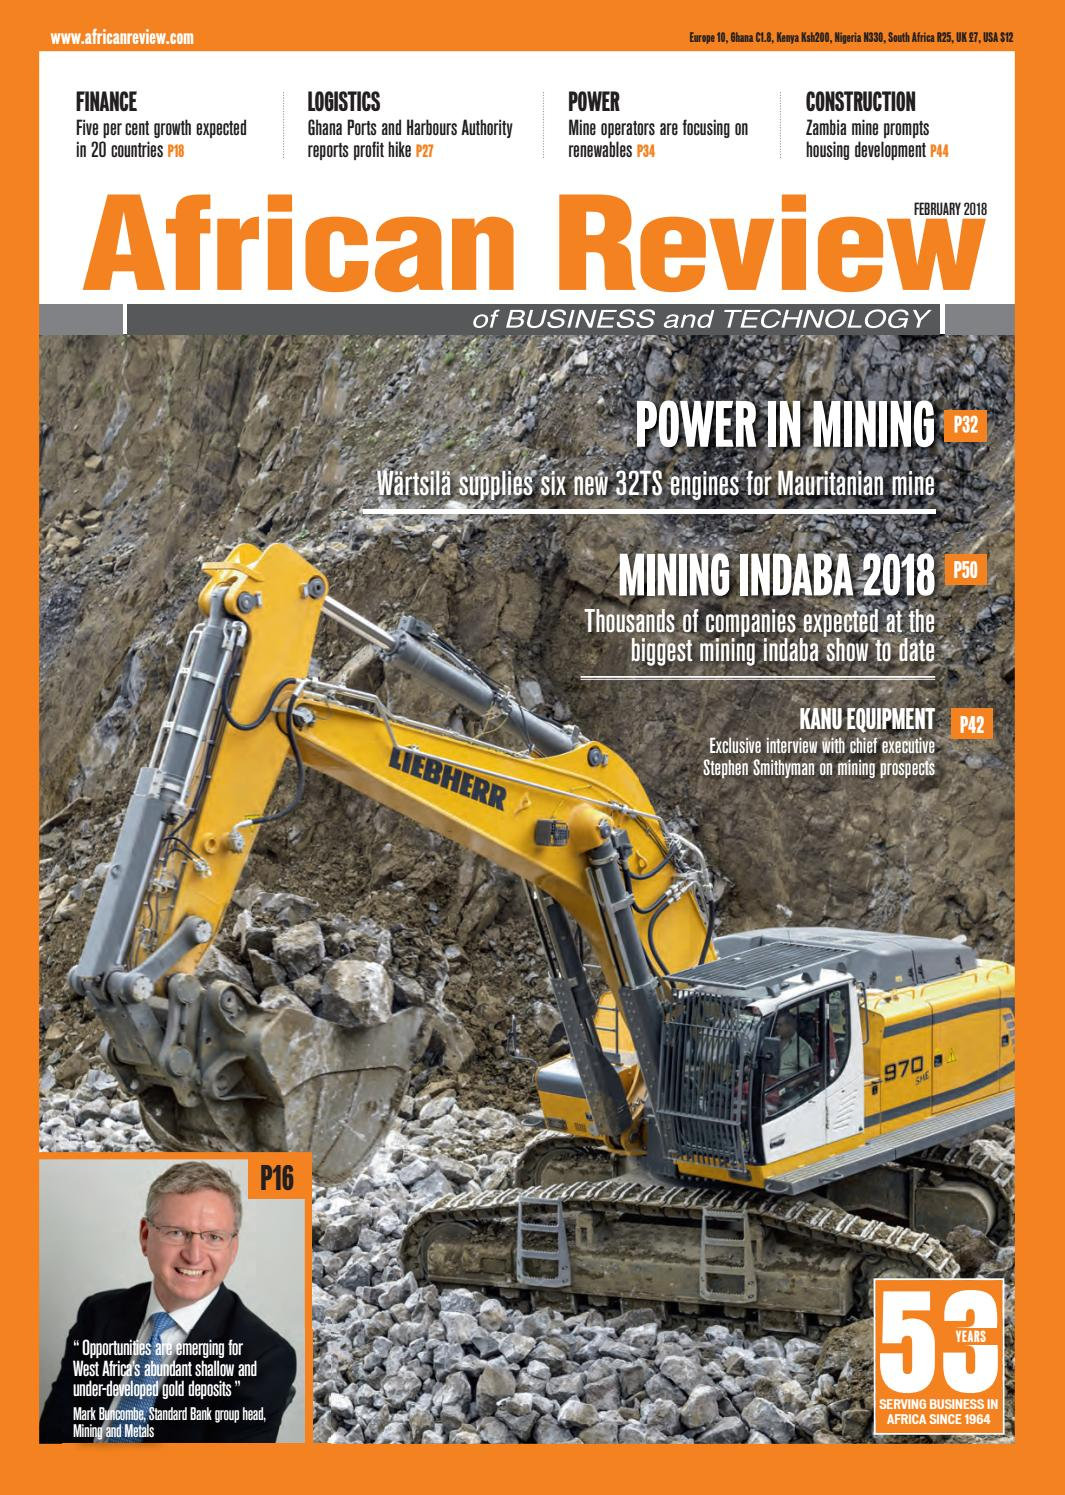 African Review February 2018 by Alain Charles Publishing - issuu